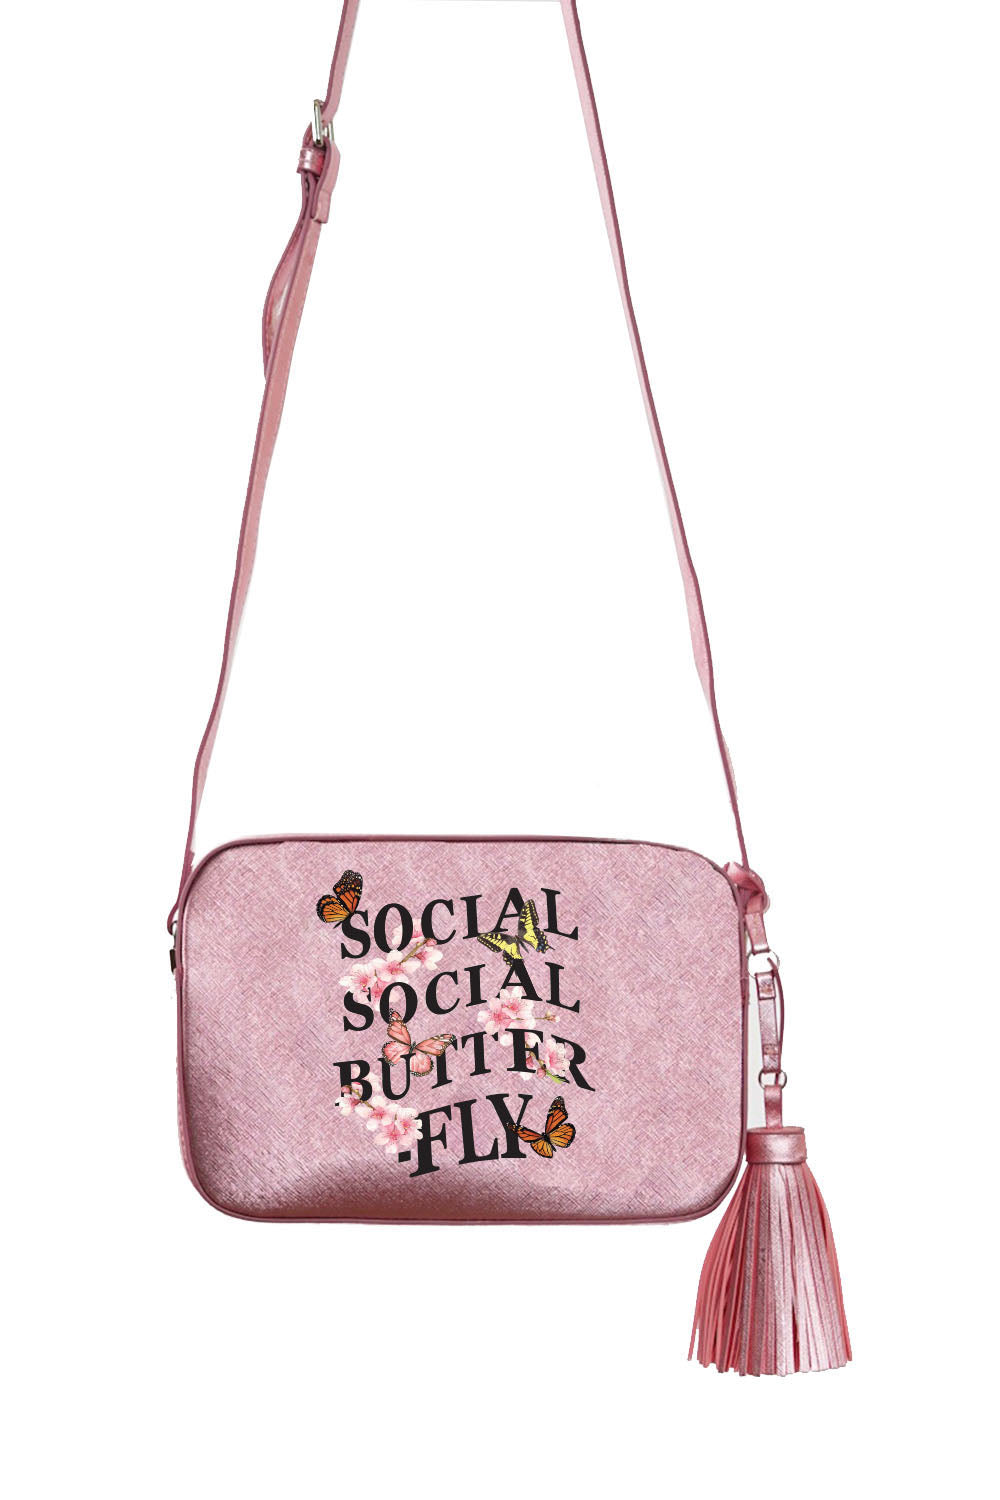 VEGAN CROSSBODY BAG - Social Social Butterfly